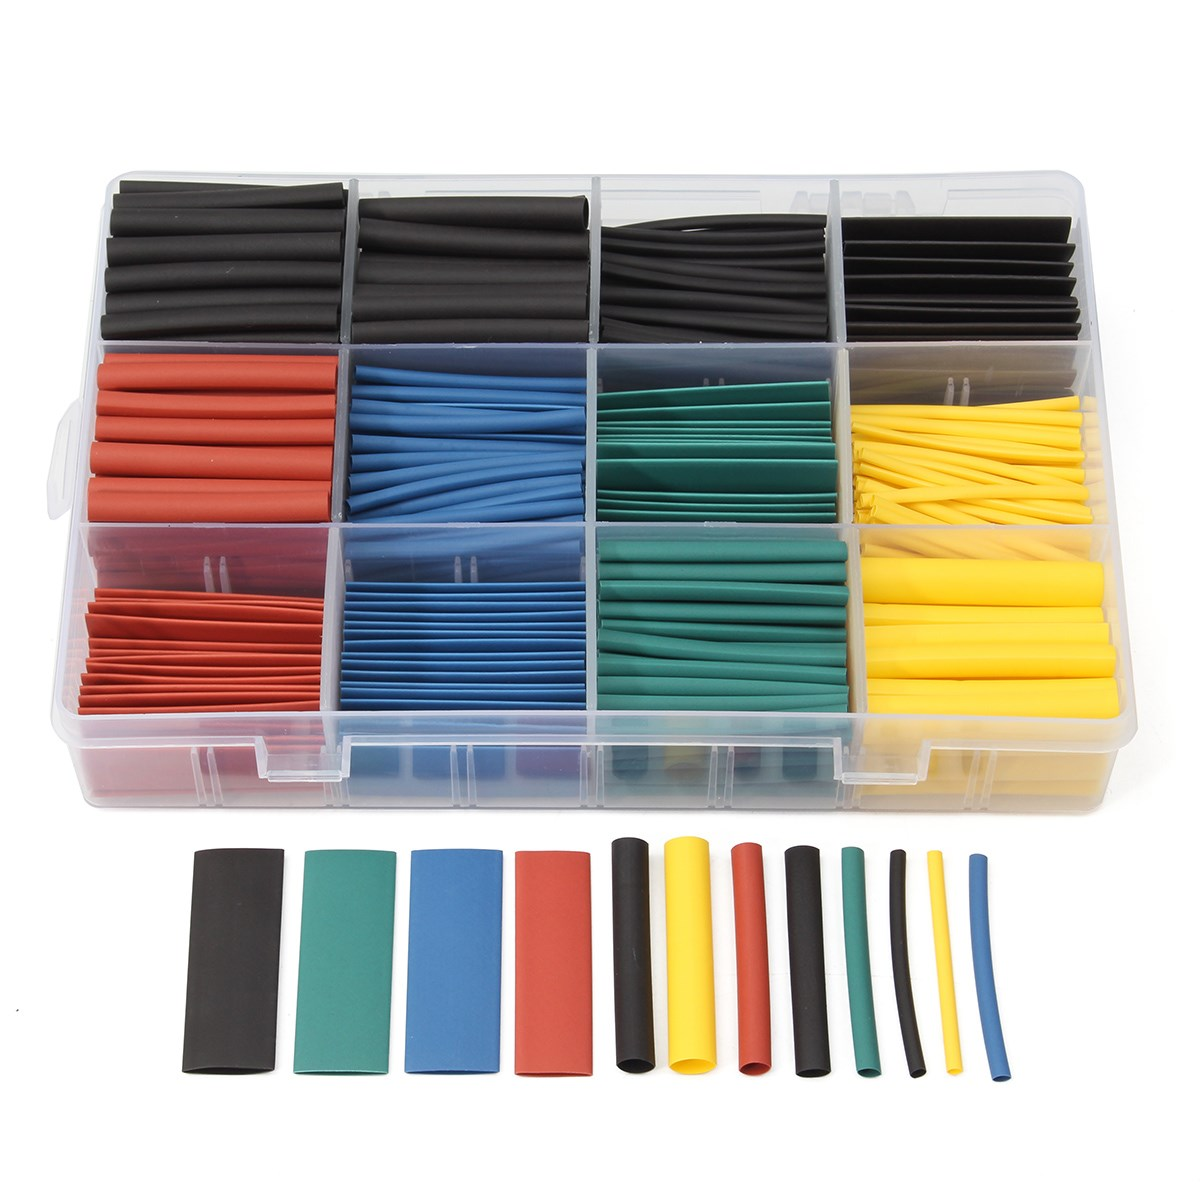 530pcs Multi Color Heat Shrink Tubing Insulation Shrinkable Tube Assortment  Polyolefin Ratio 2:1 Wrap Sleeve Tube Kit